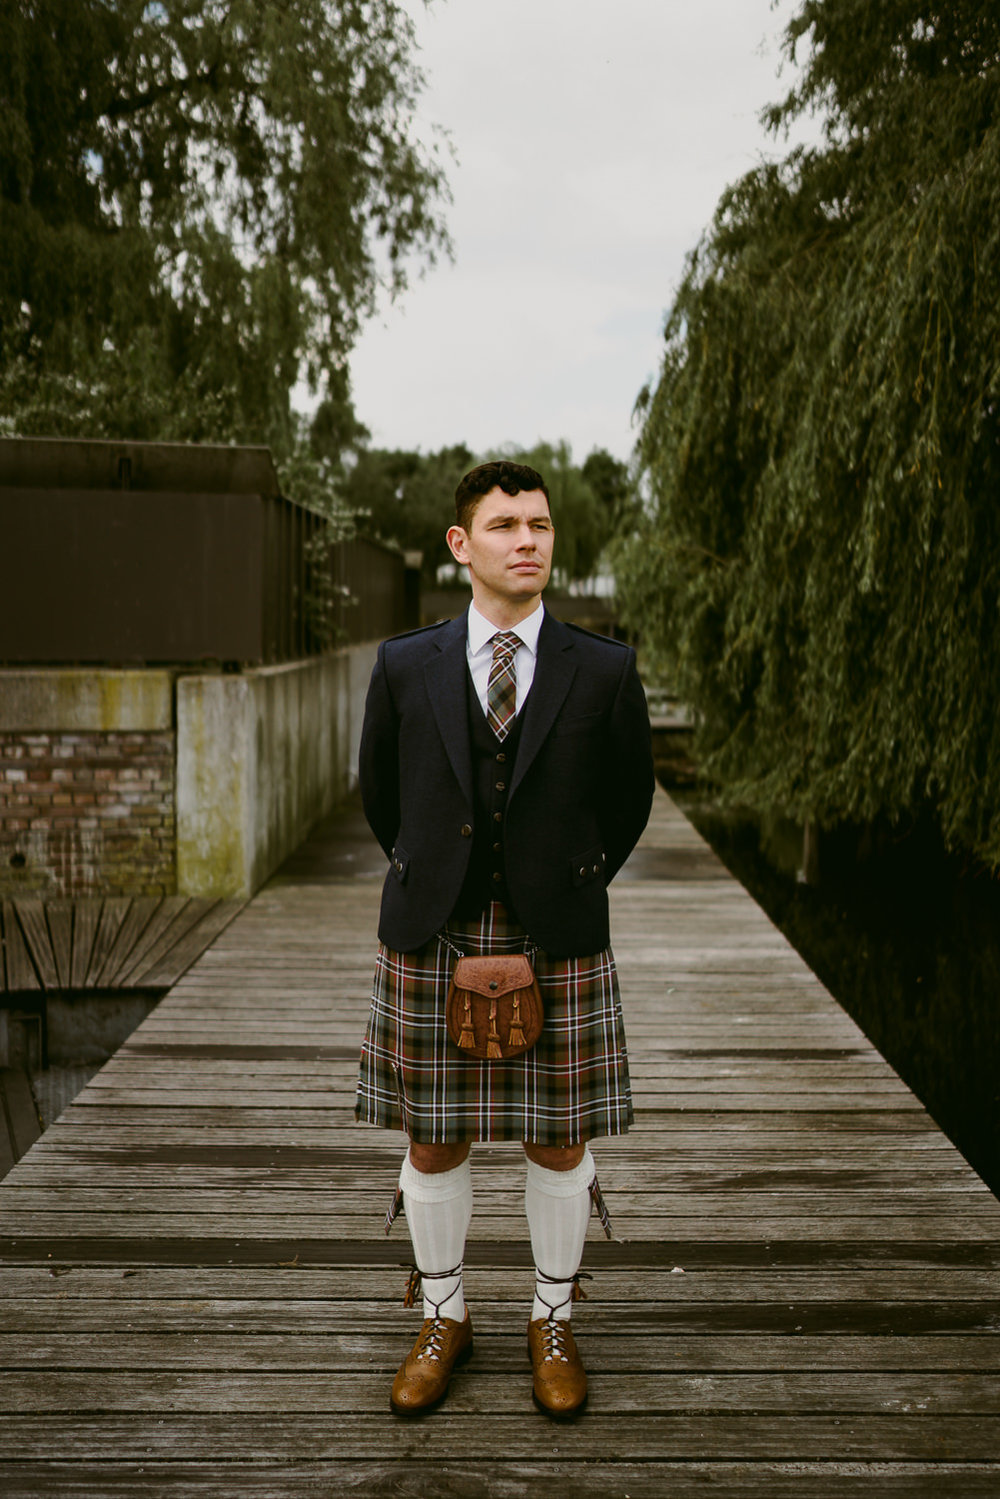 amsterdam wedding photography scottish kilt dress